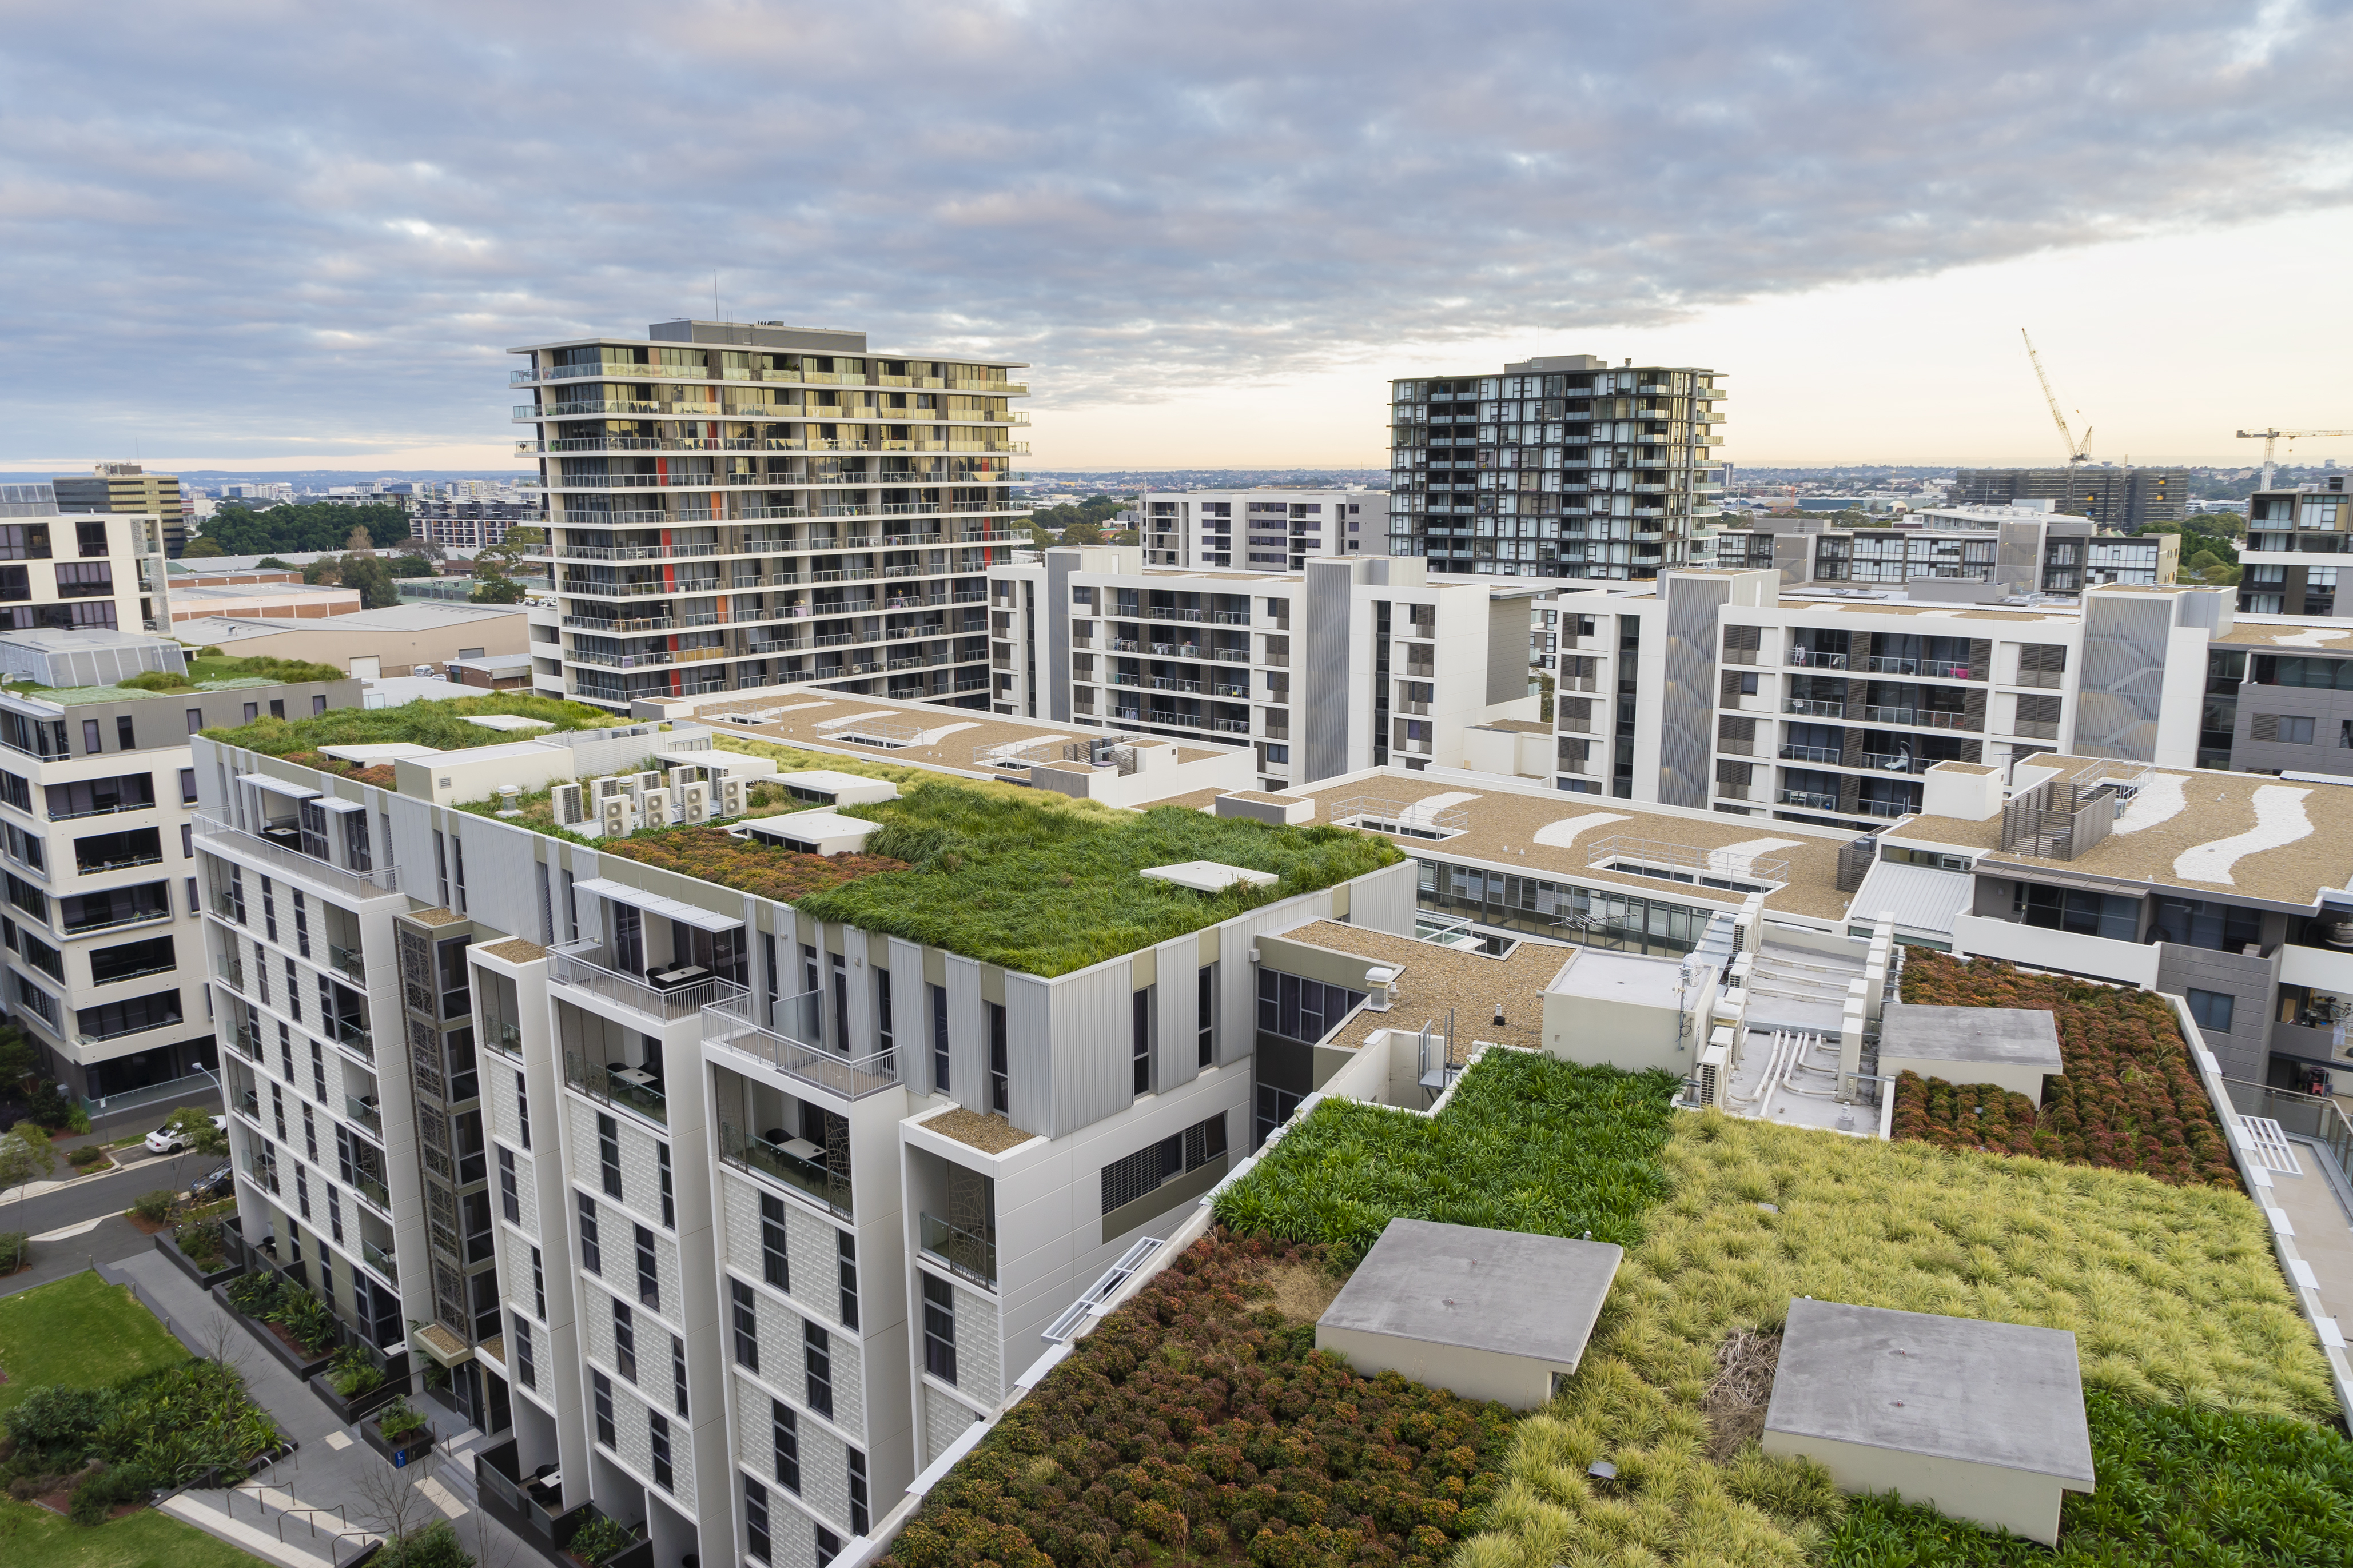 8 ways cities are transforming urban rooftops